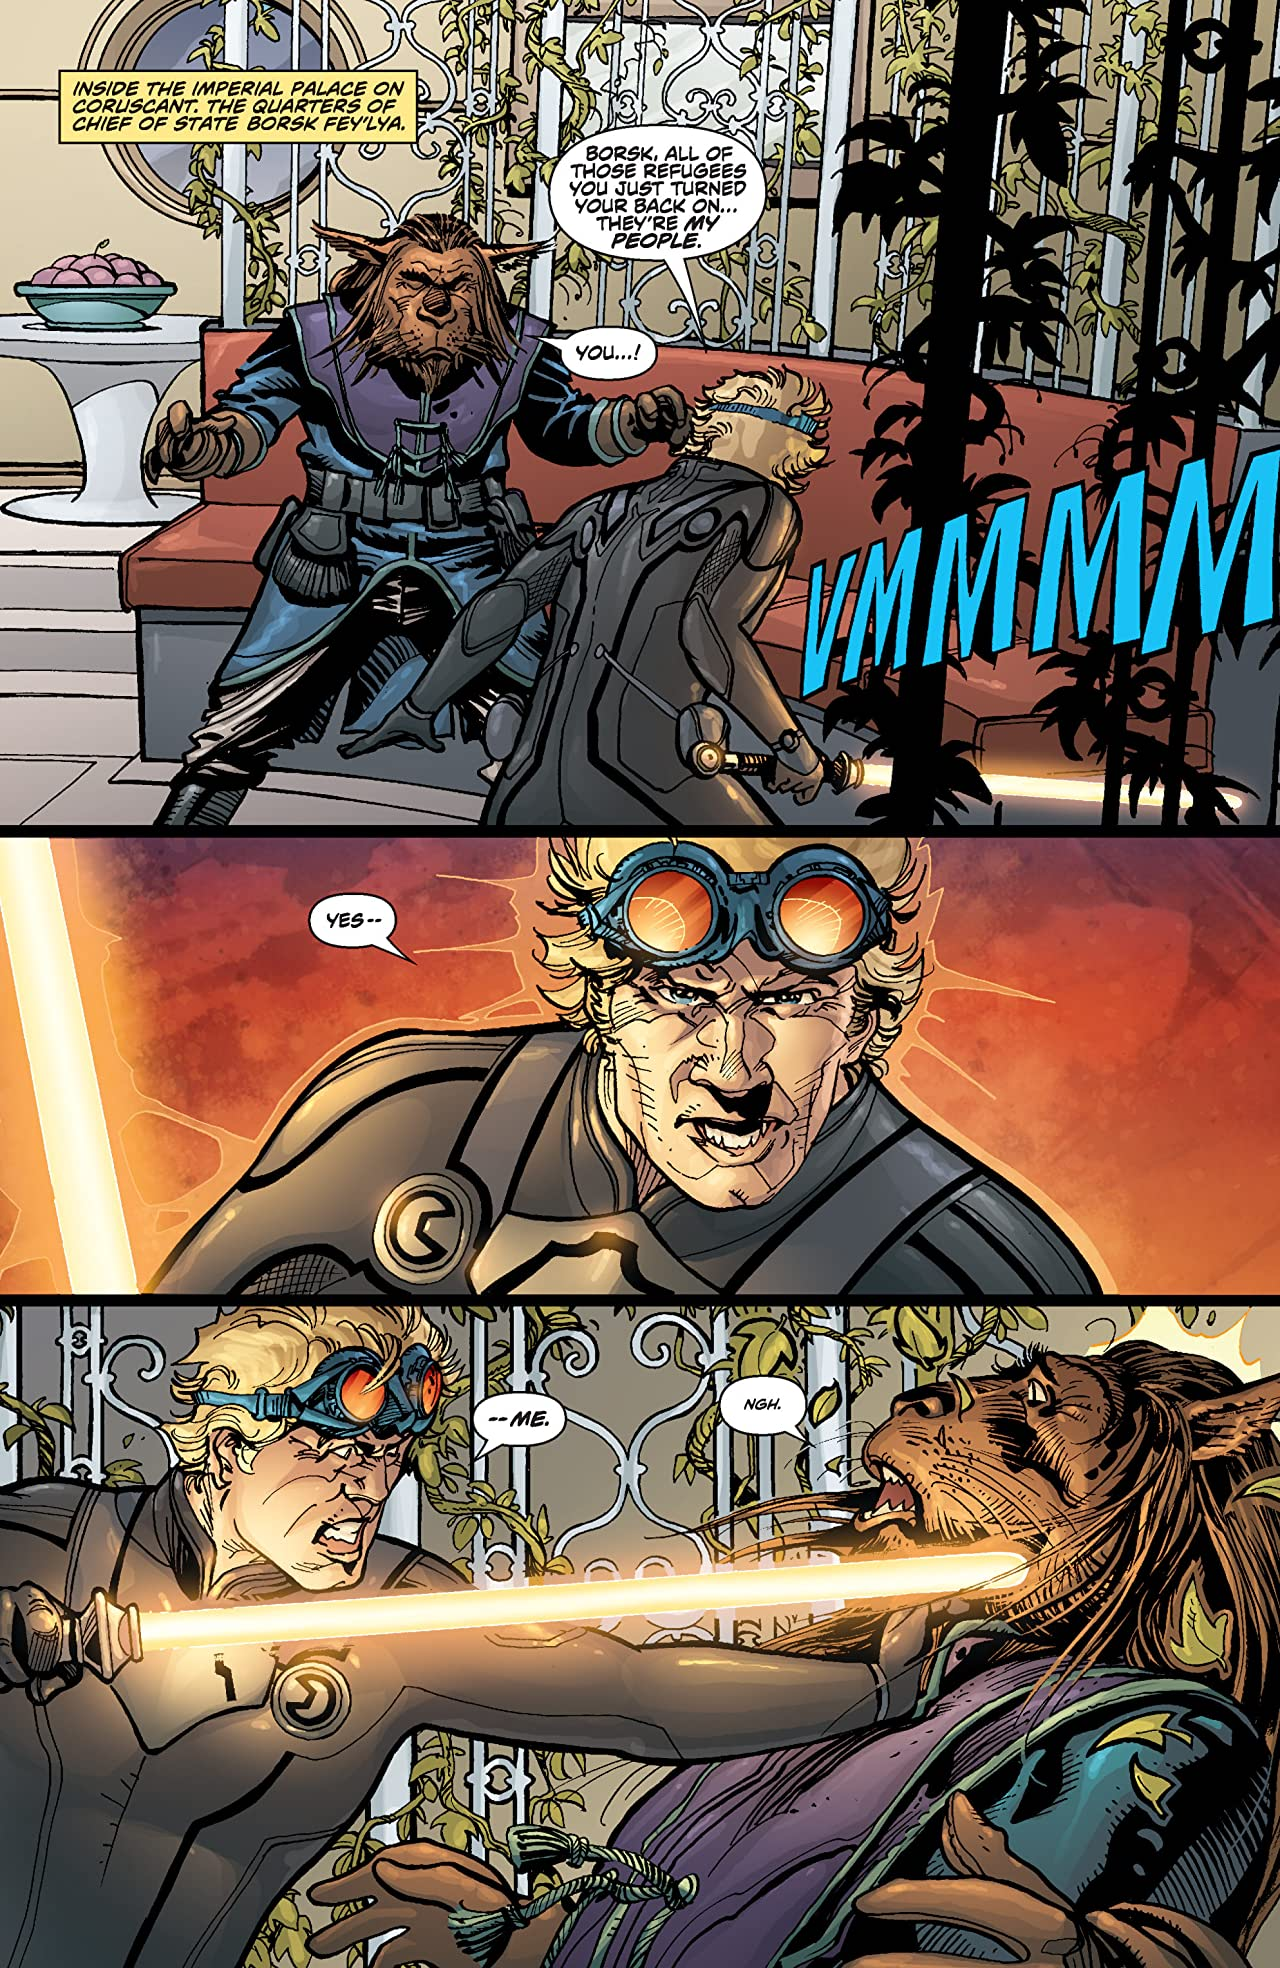 Star Wars: Invasion - Revelations (2011) #4 (of 5)